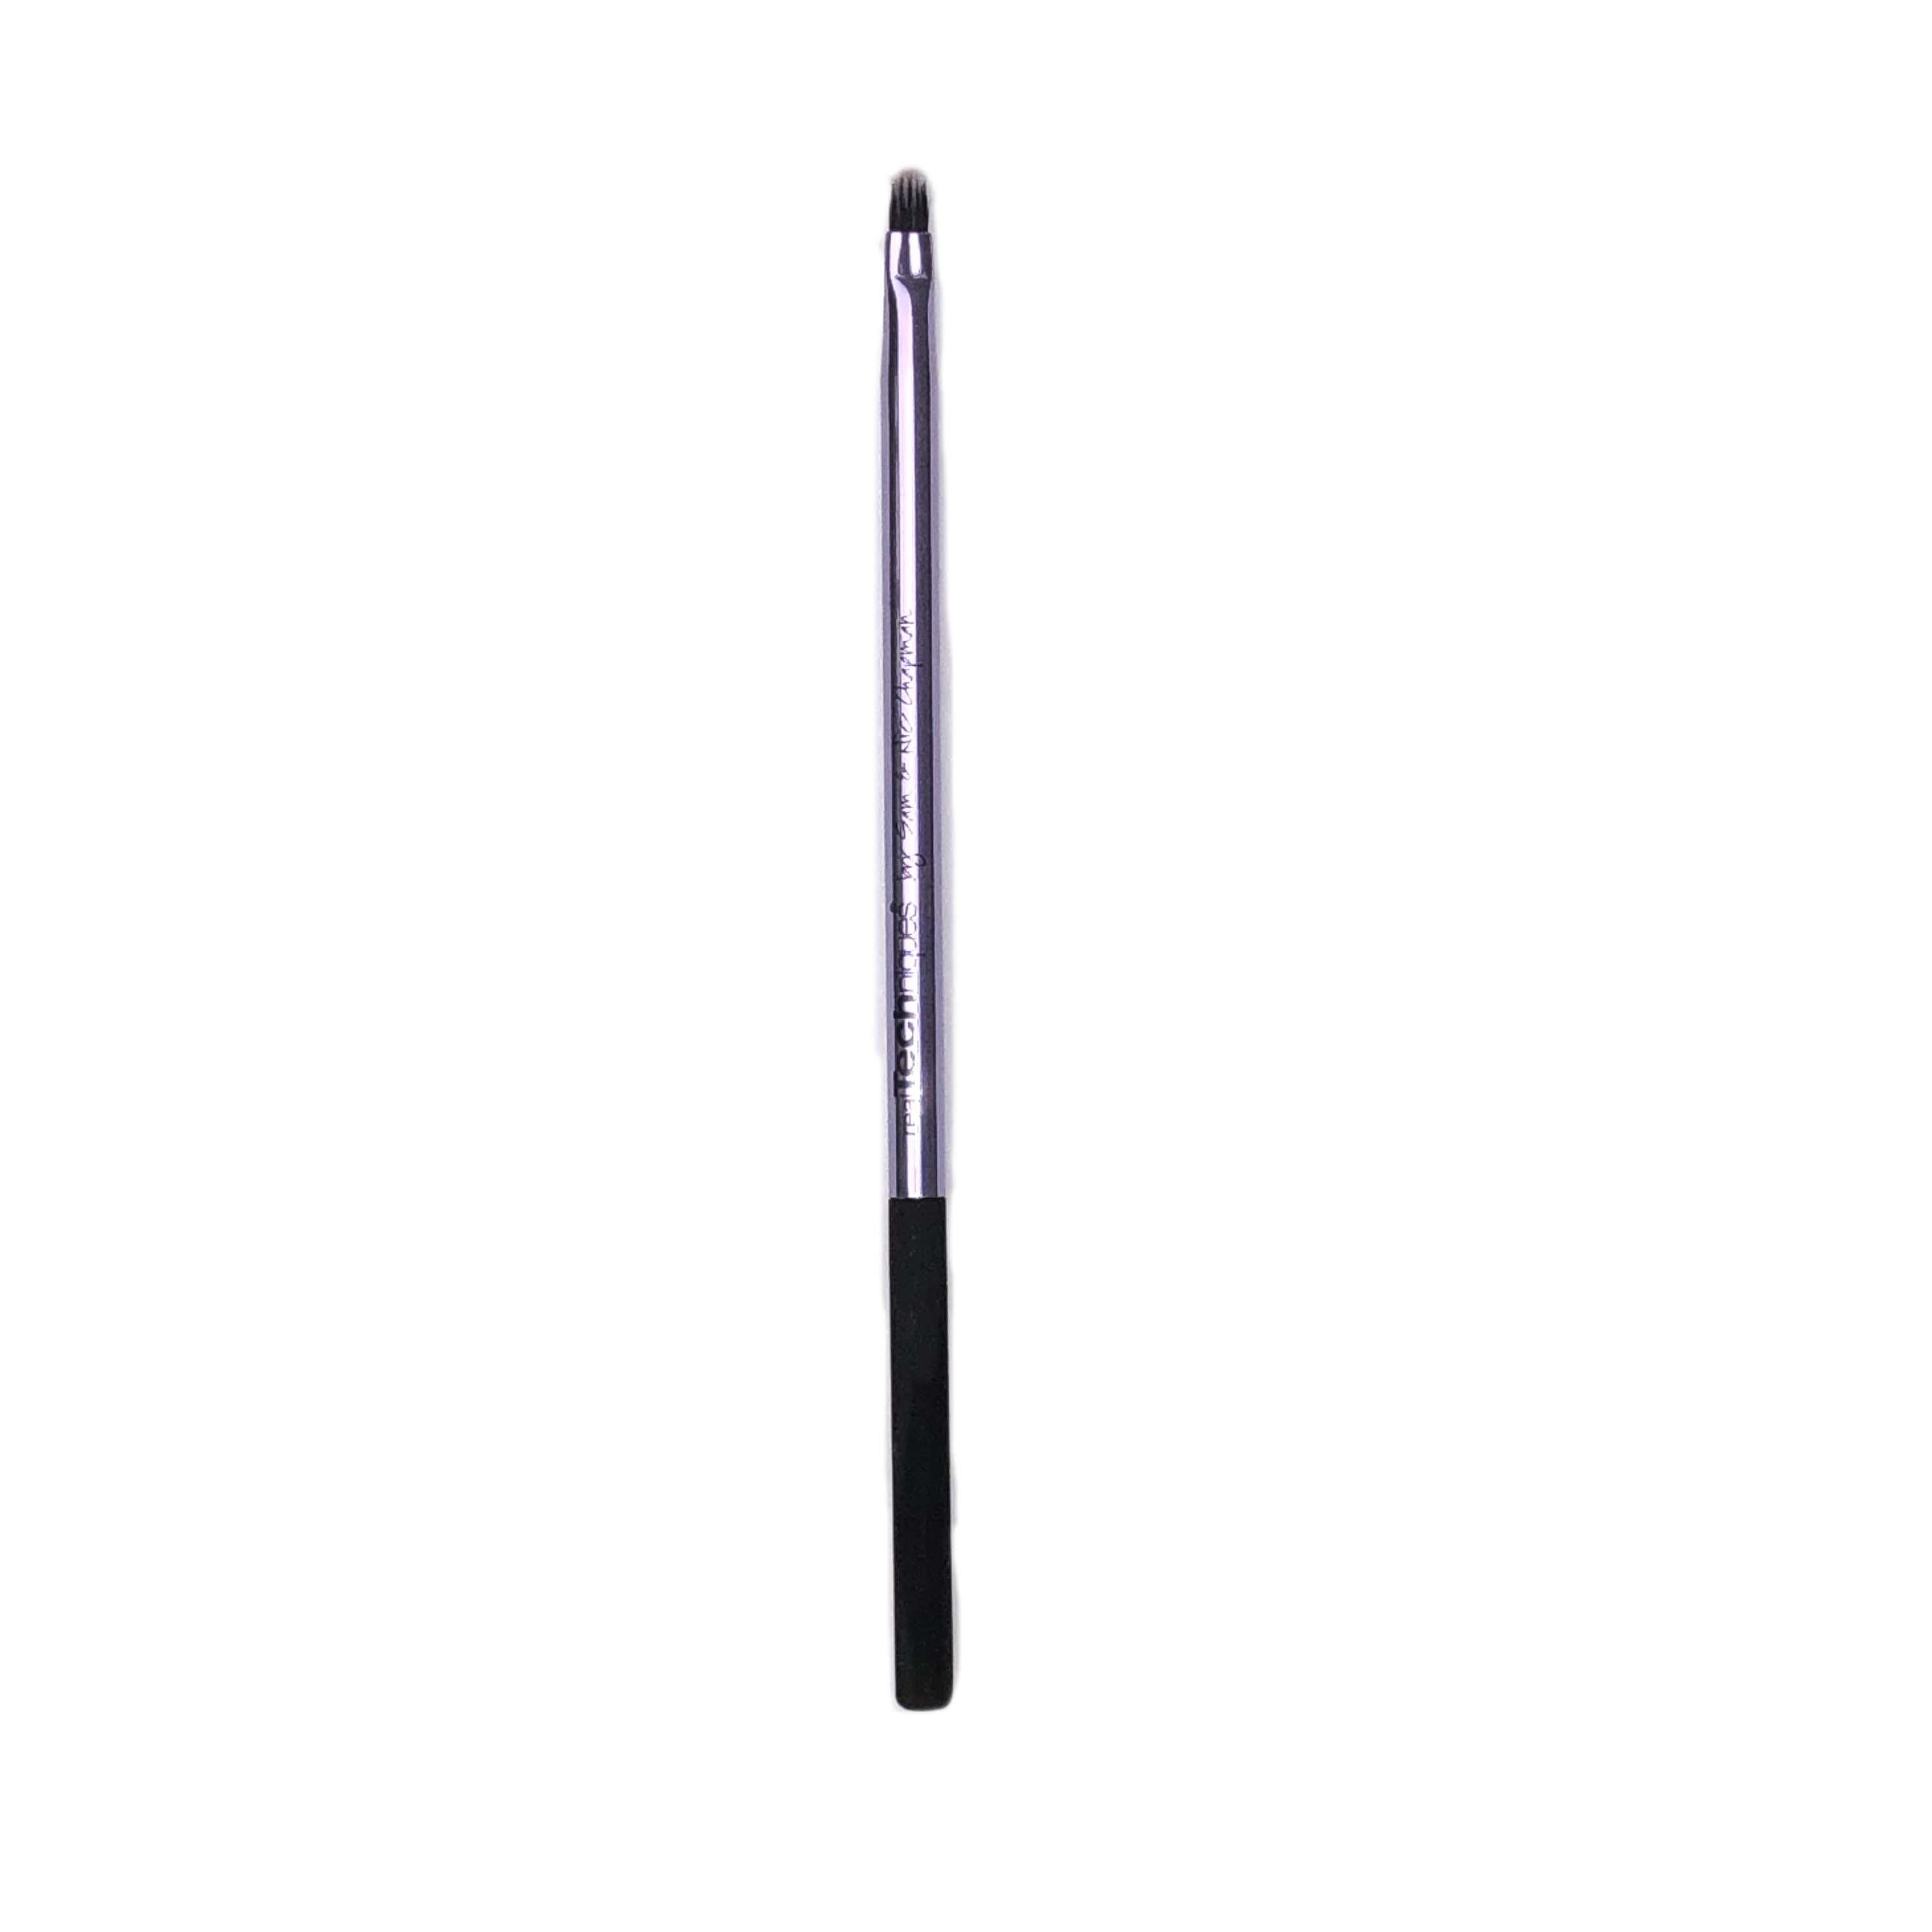 Real Techniques Precision Tip Eye Brush